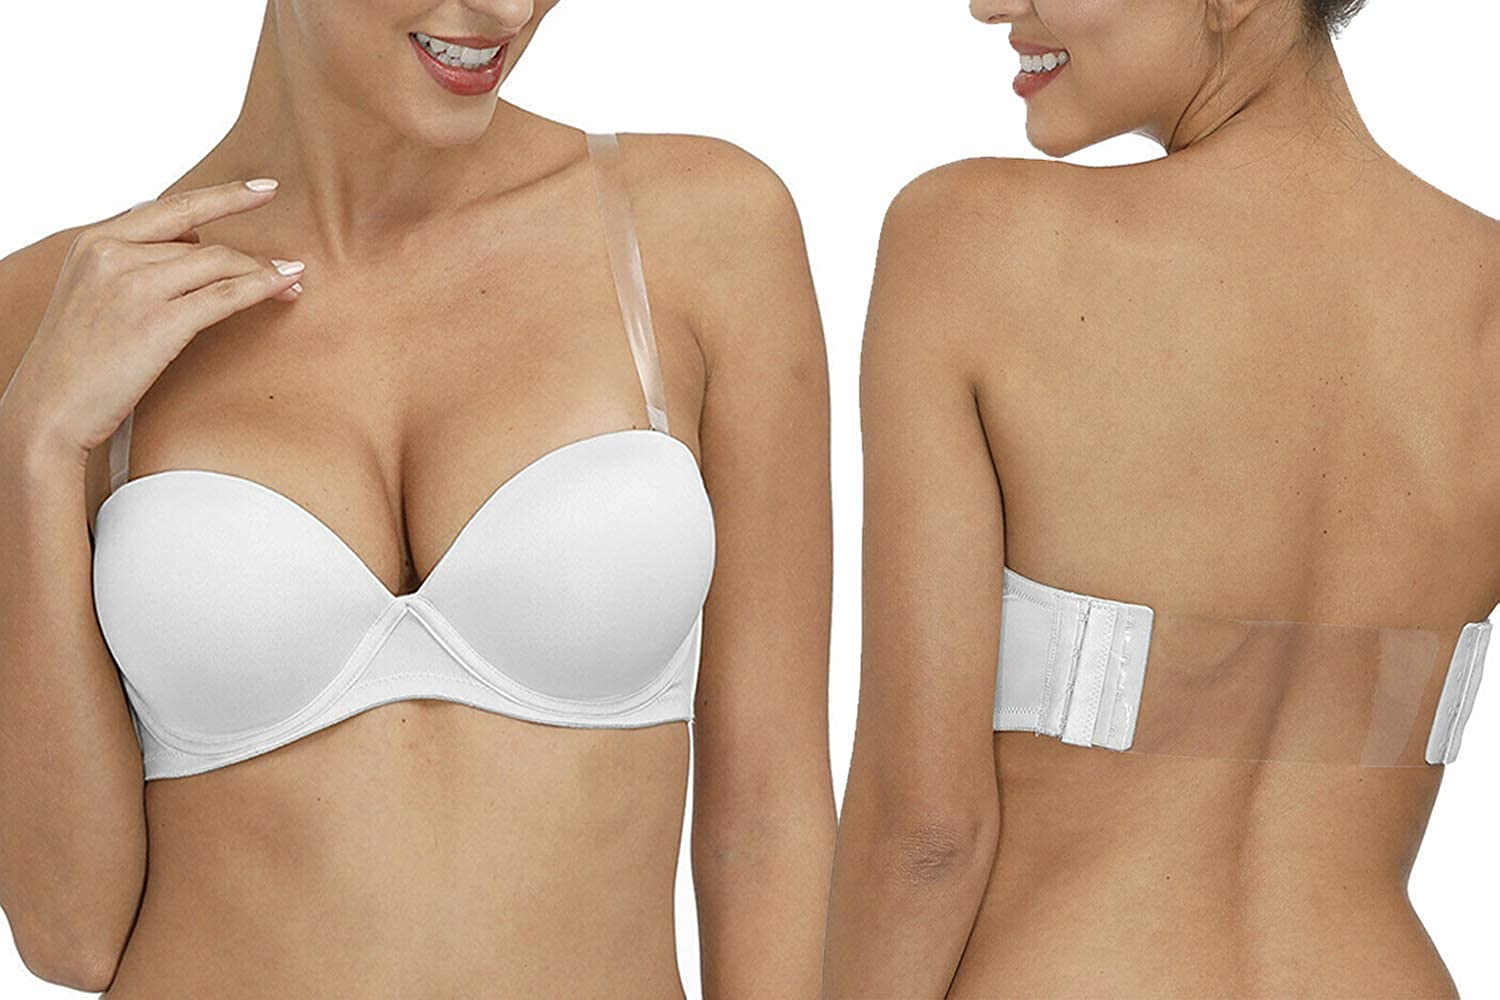 Vogue's Secret Women's Strapless Convertible Push Up Bra Padded Clear Backless Bras with Invisible Straps